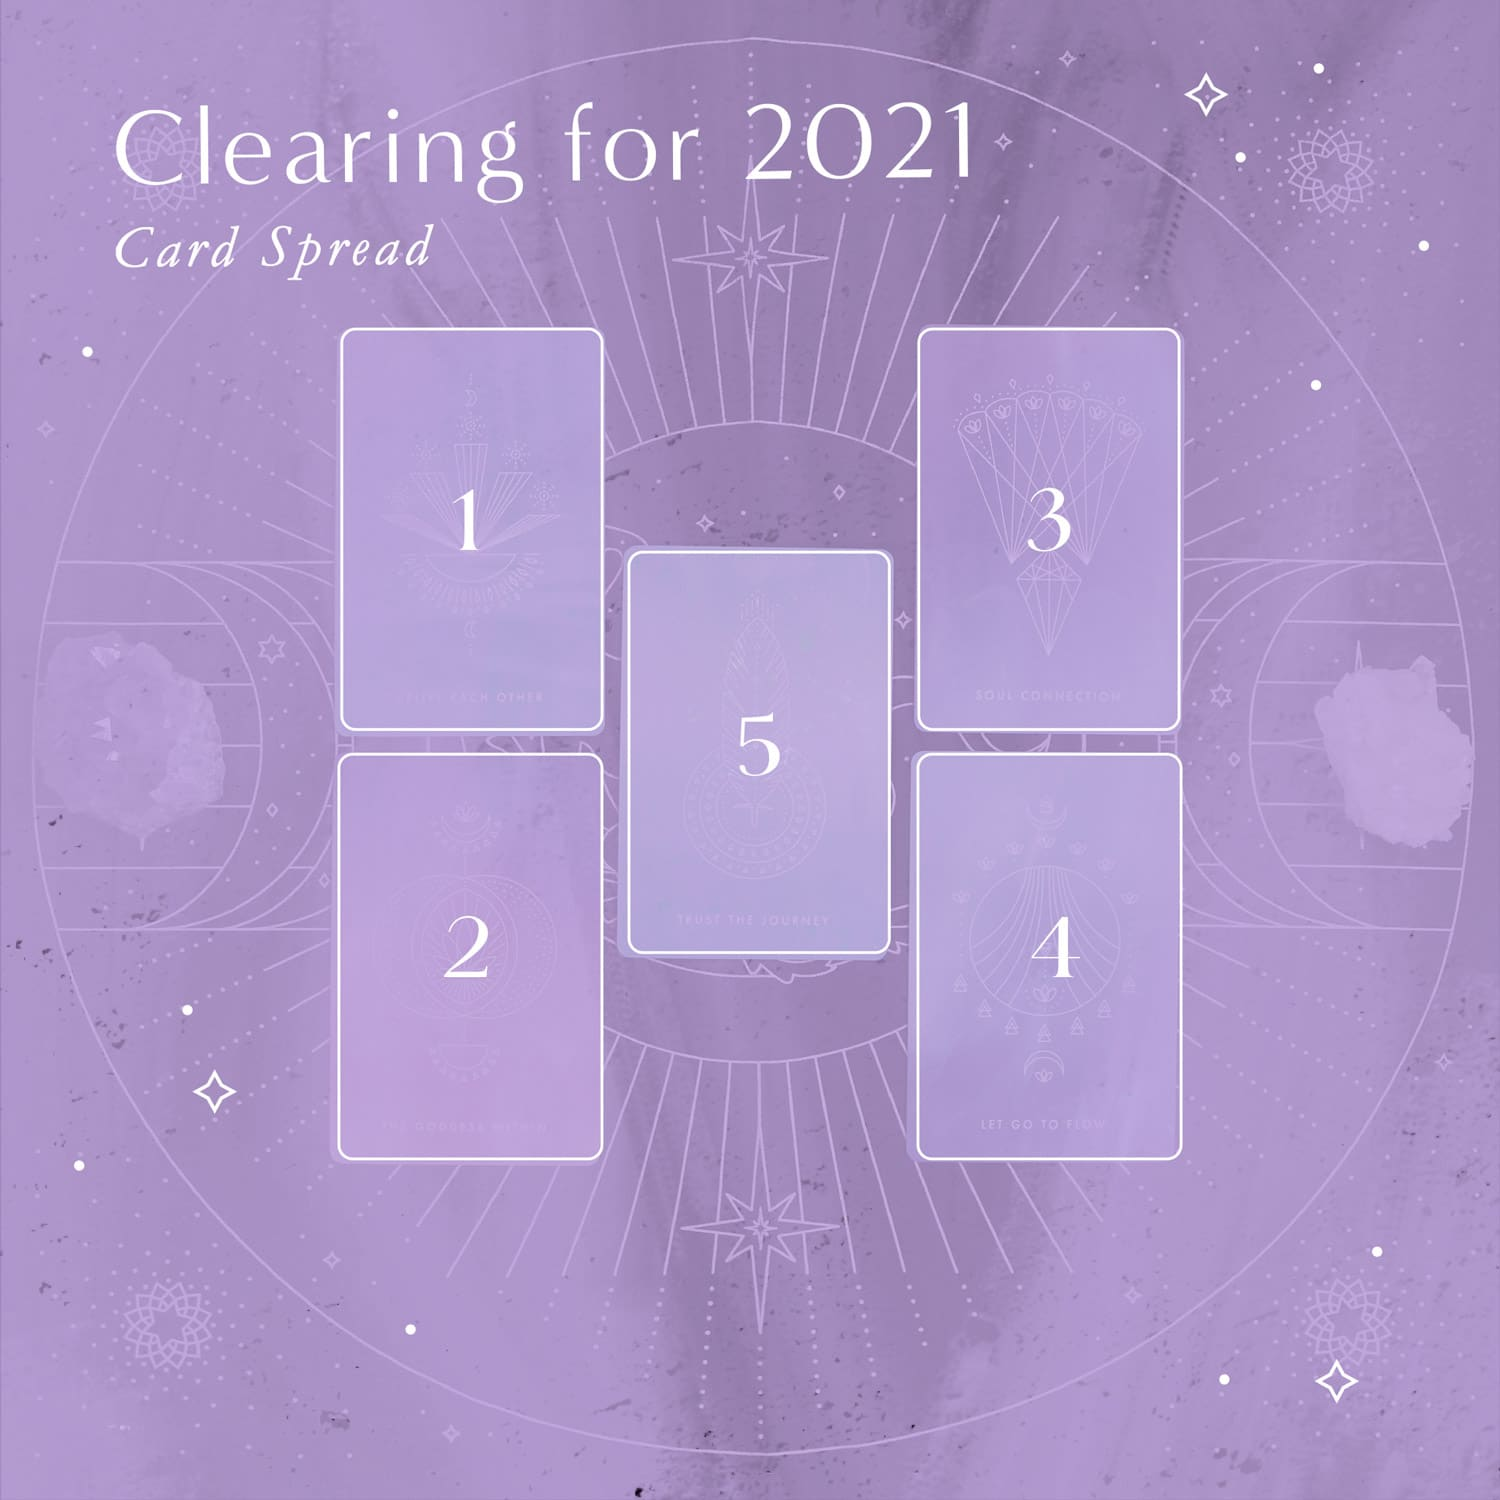 A 5-card spread to help you release and clear in preparation for the new year.